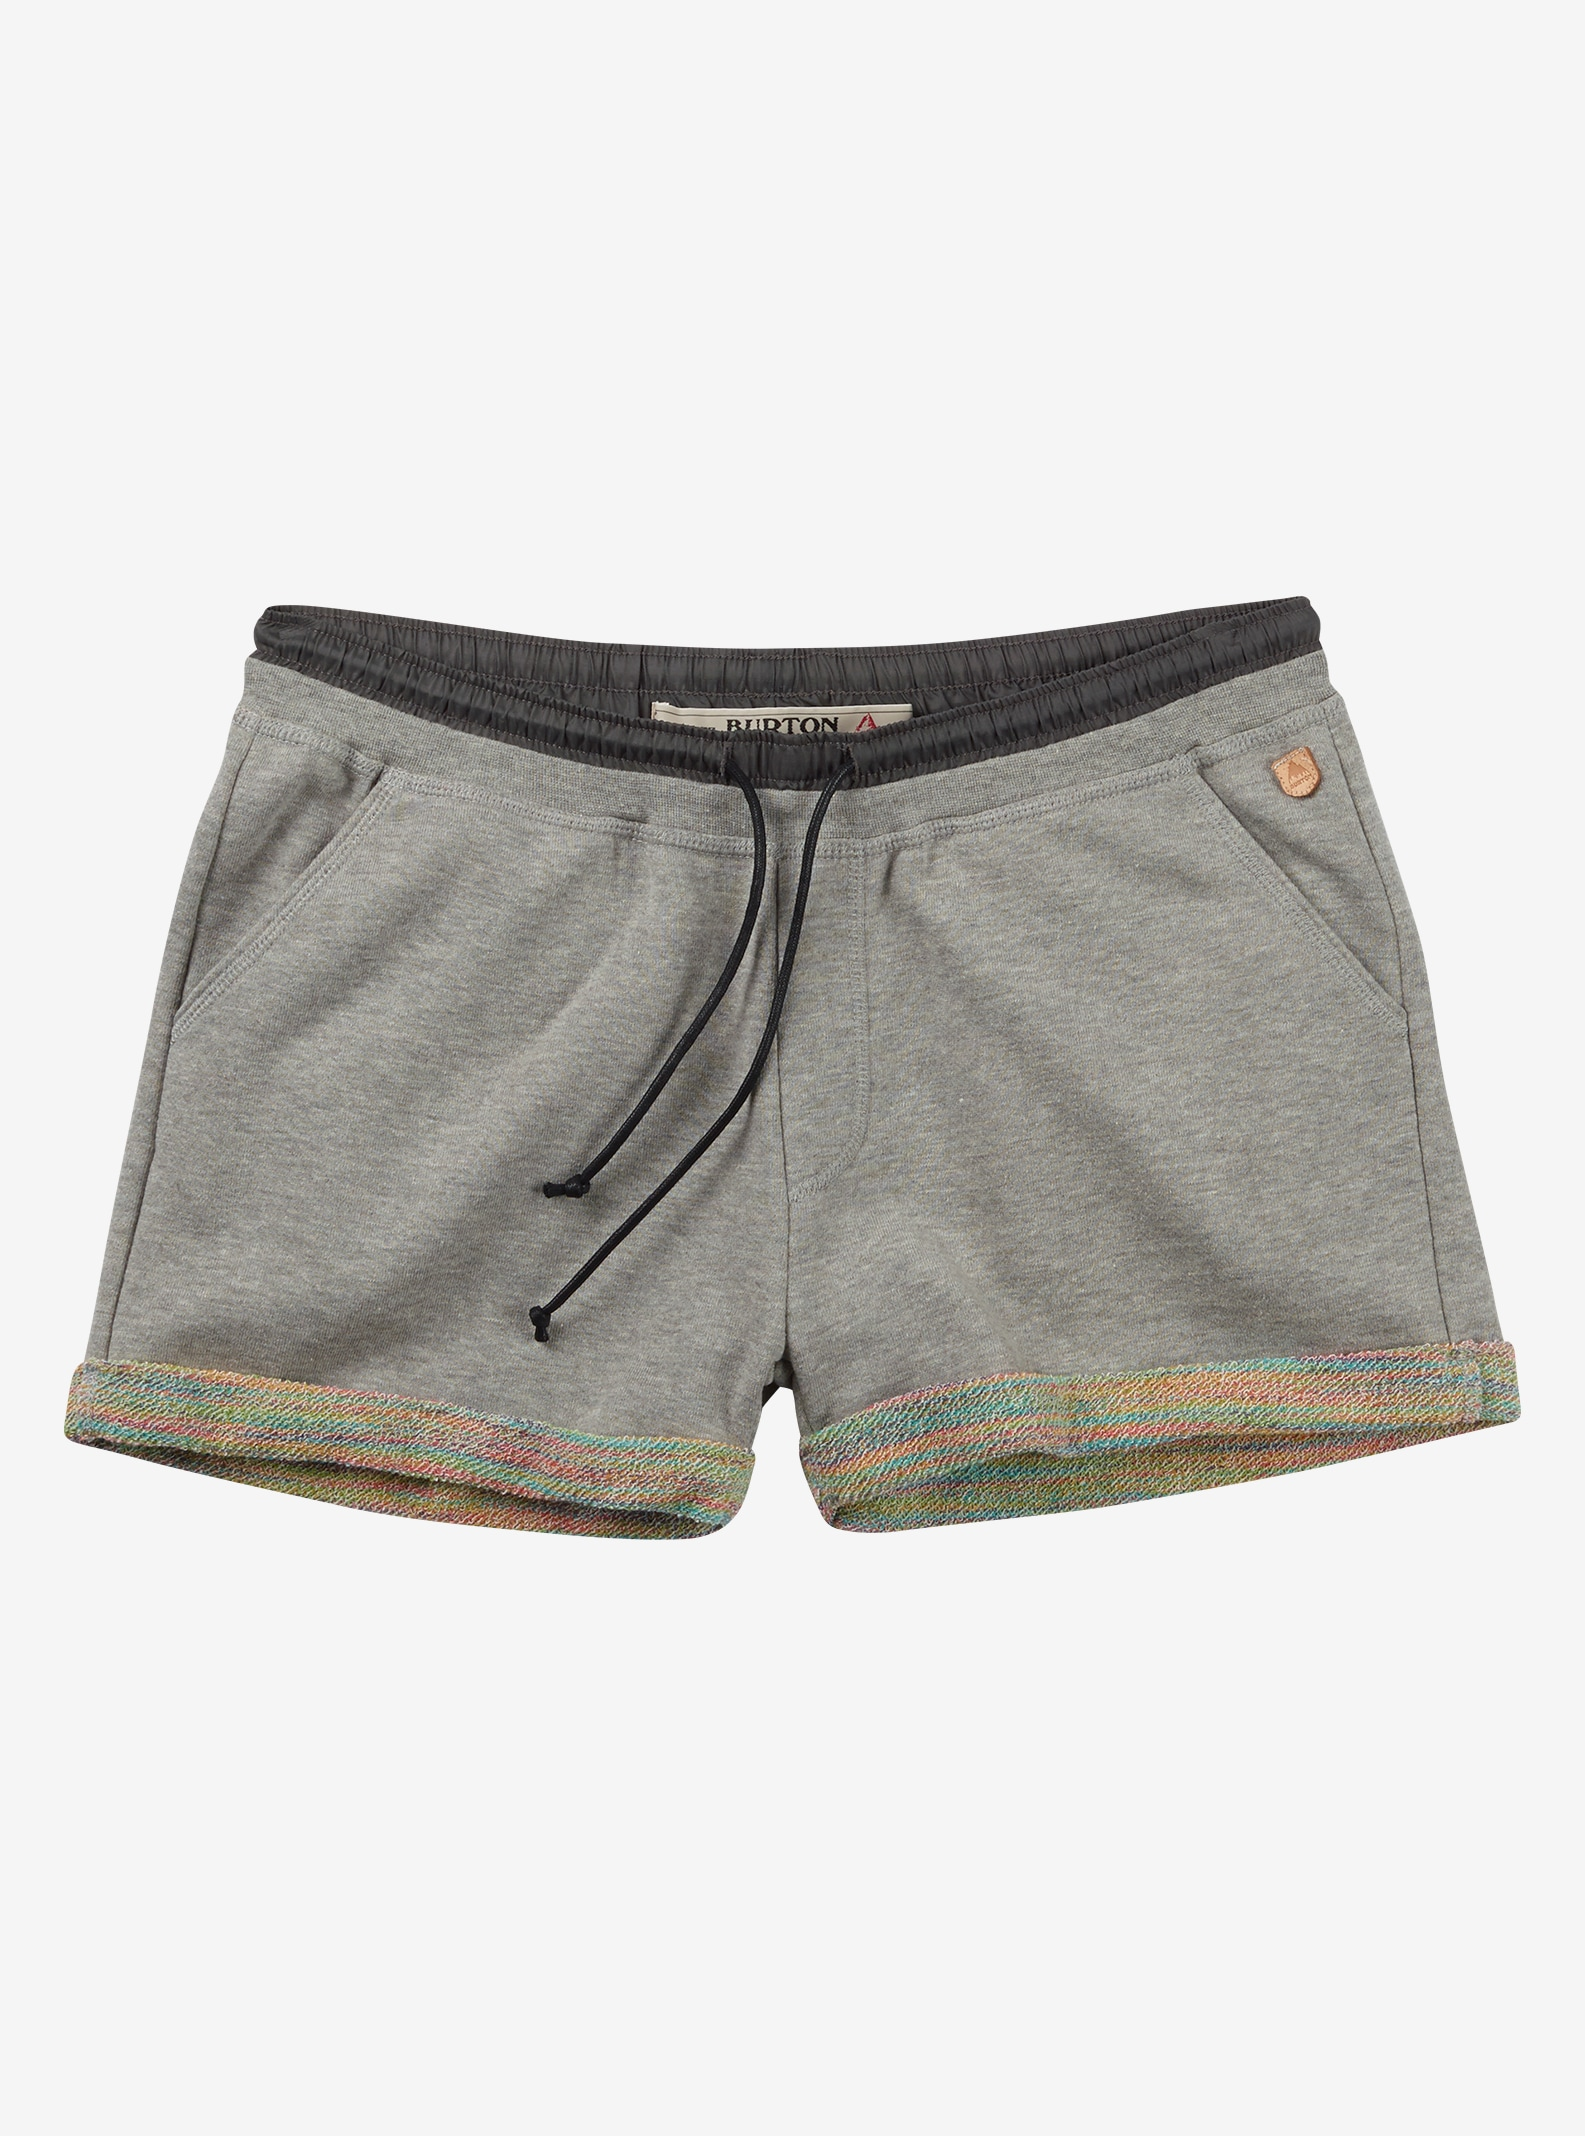 Burton Ambrose Shorts angezeigt in Gray Heather